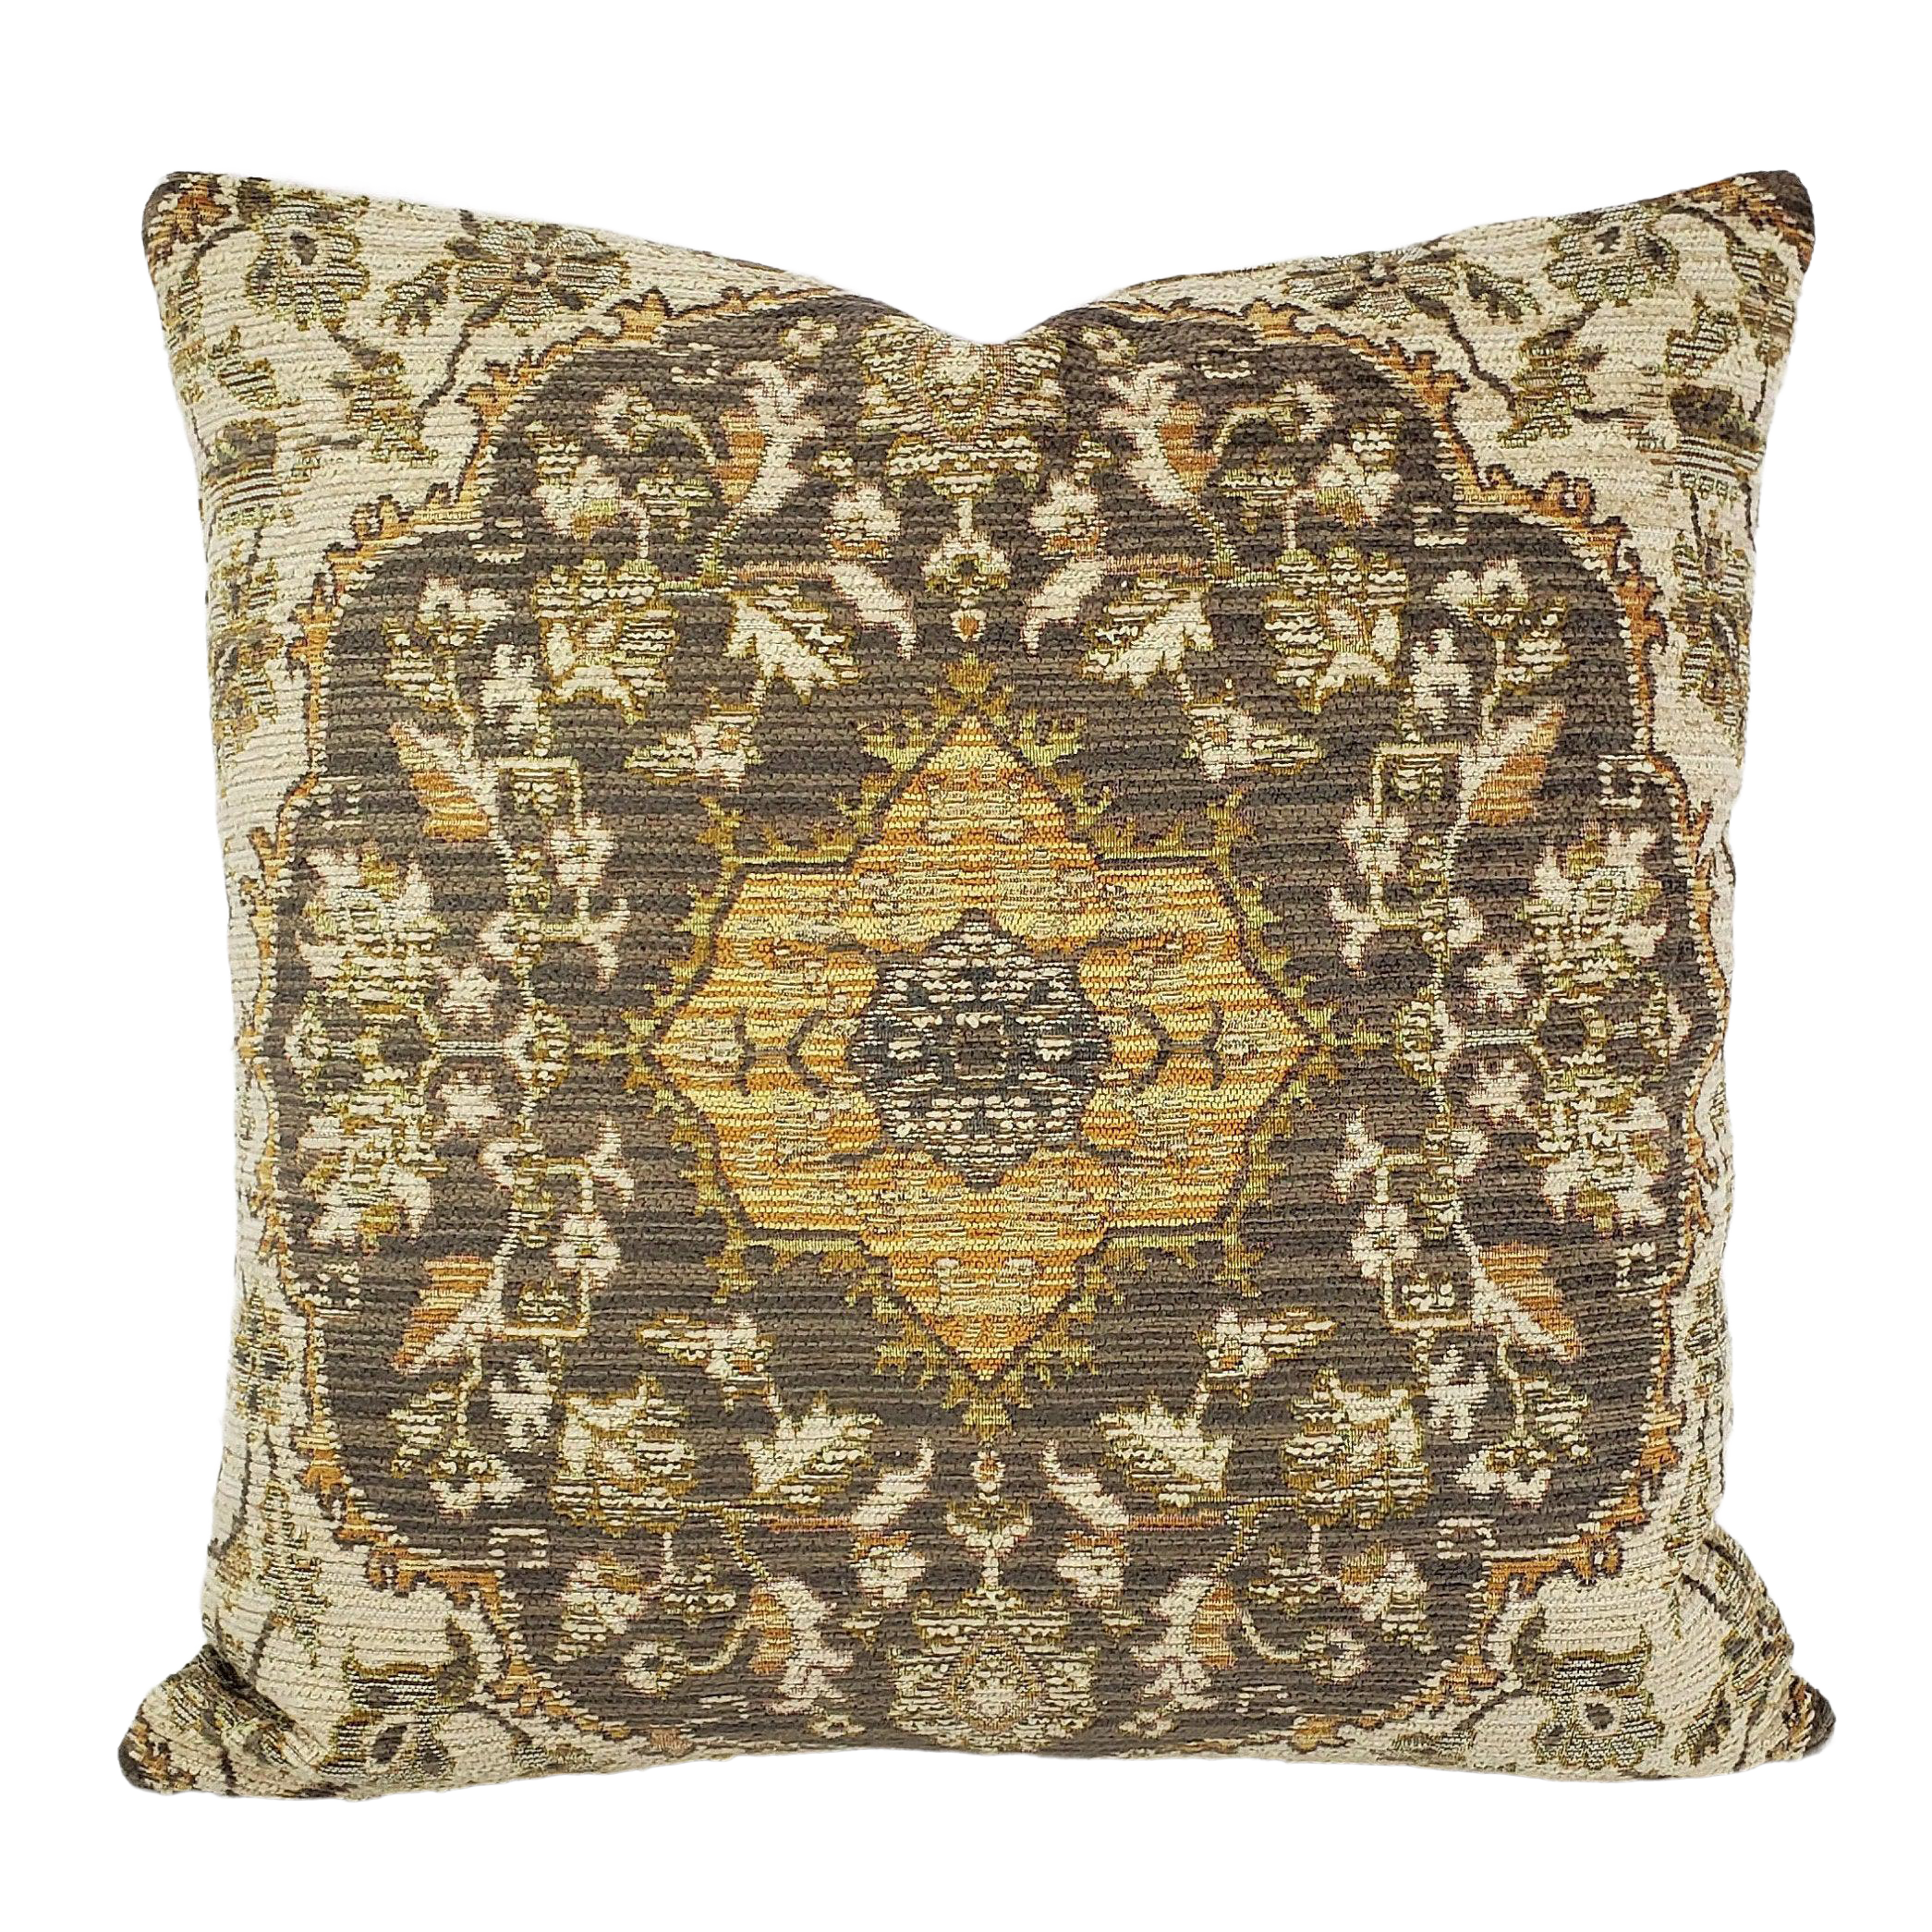 Kravet Design 33219 1611 20 X 20 Pillow Cover Gold Cream And Gray Damask Chenille Accent Cushion Case Chairish